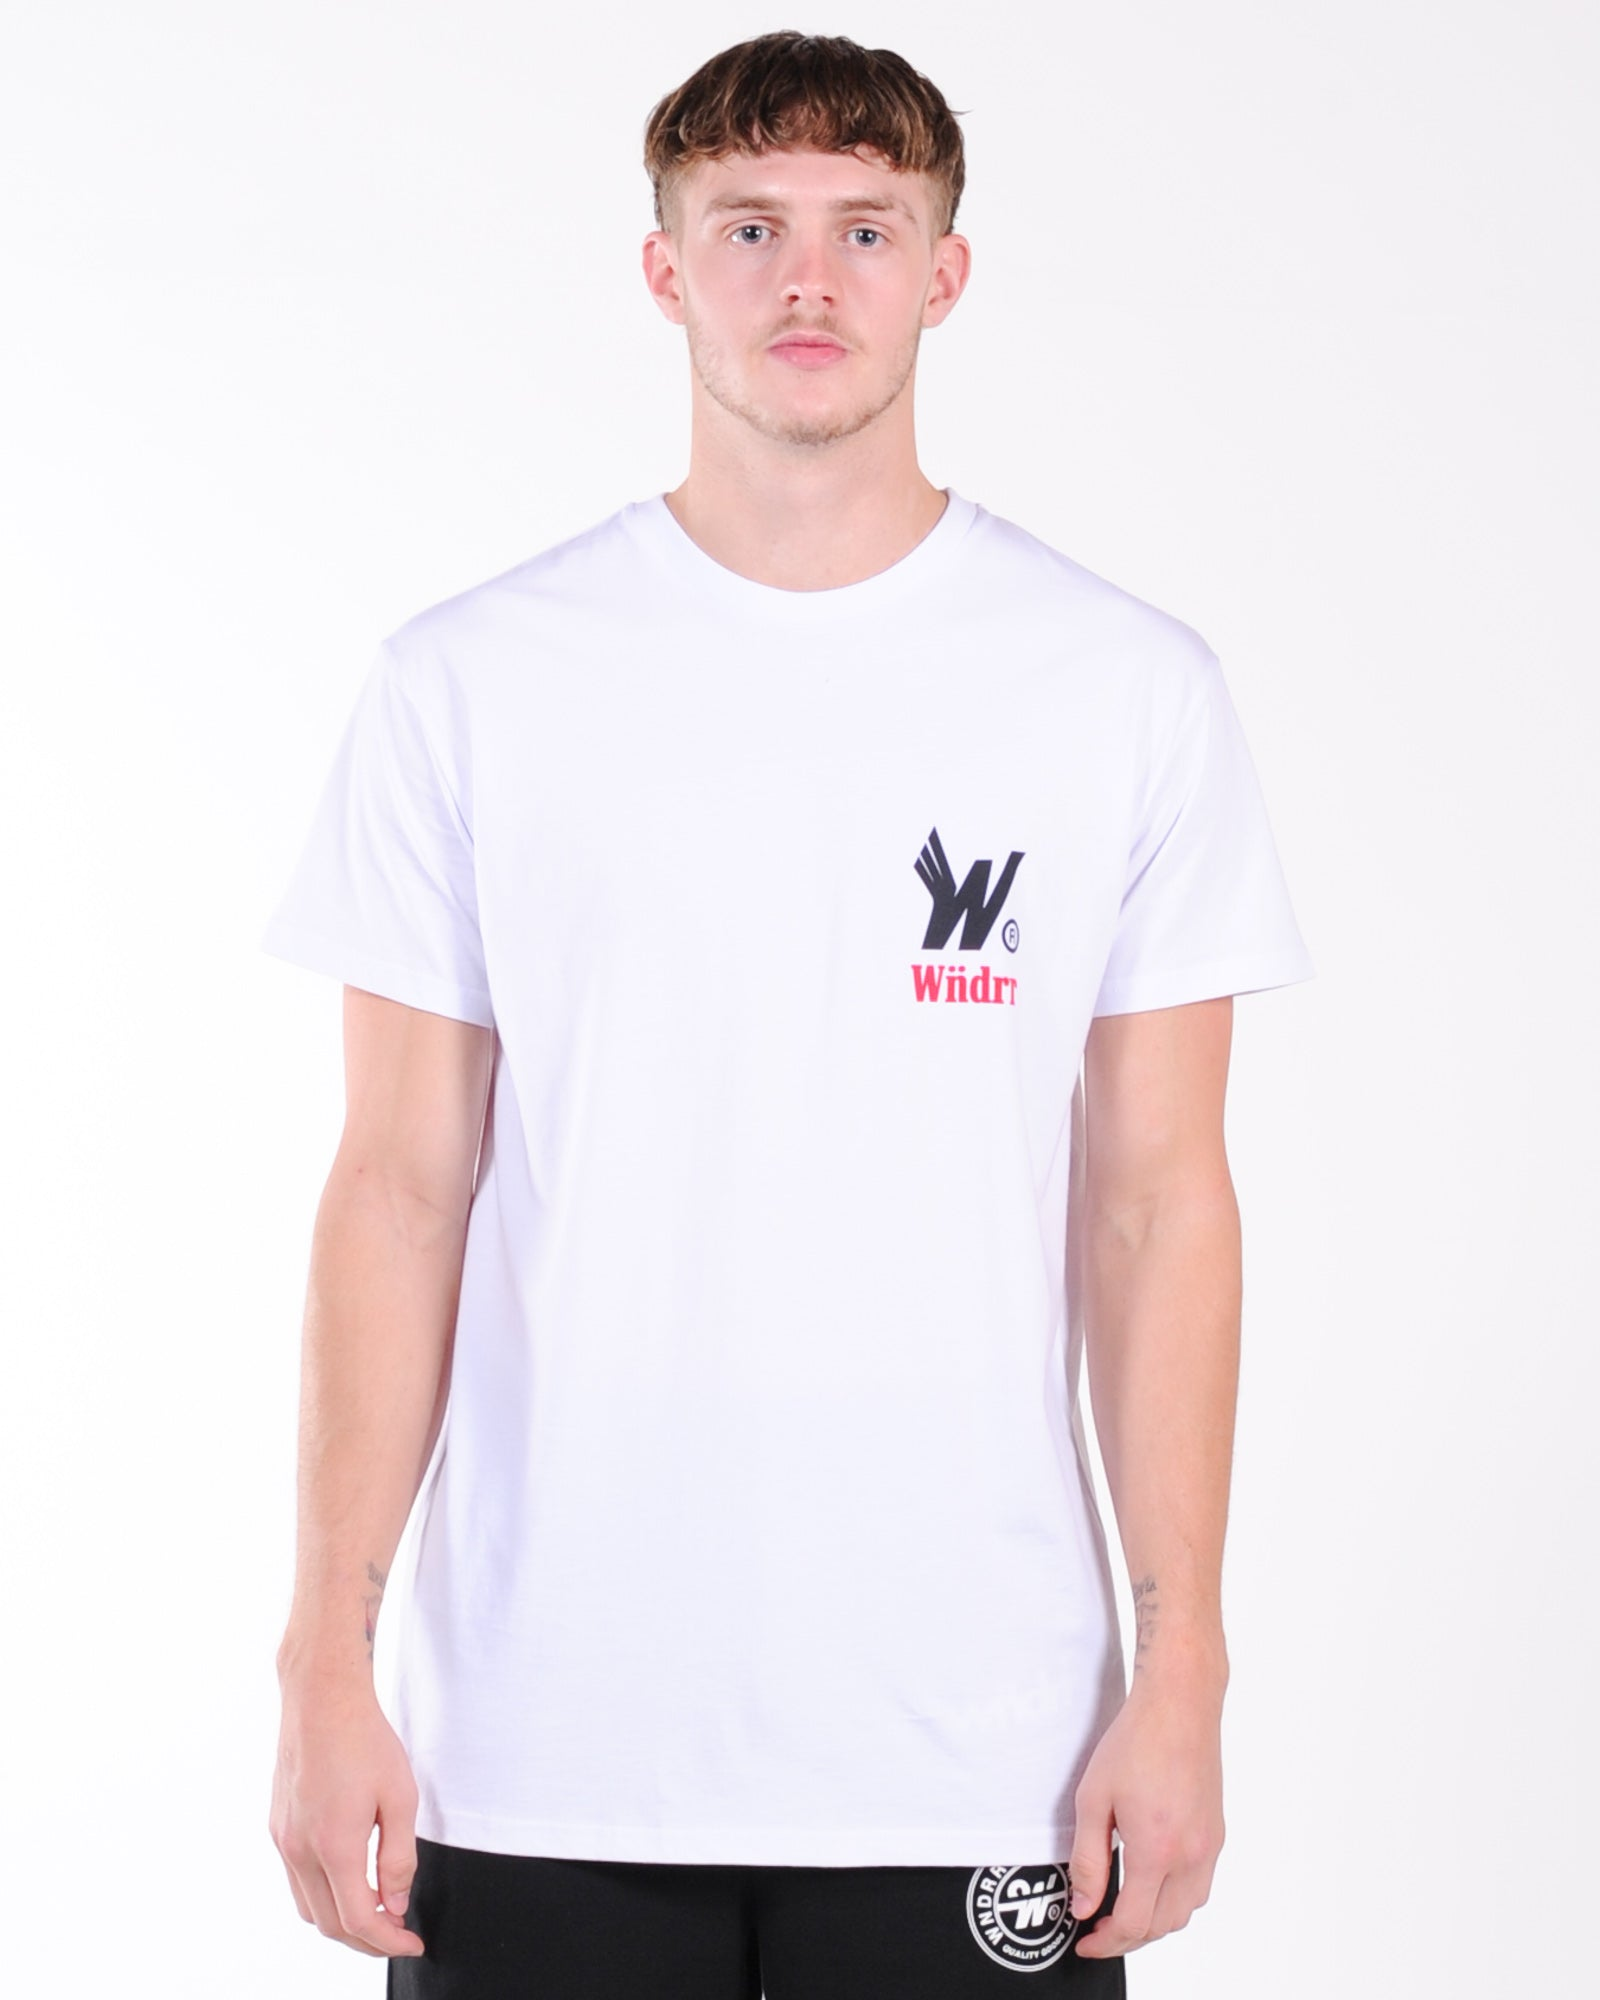 Wndrr Flight Custom Fit Tee - White